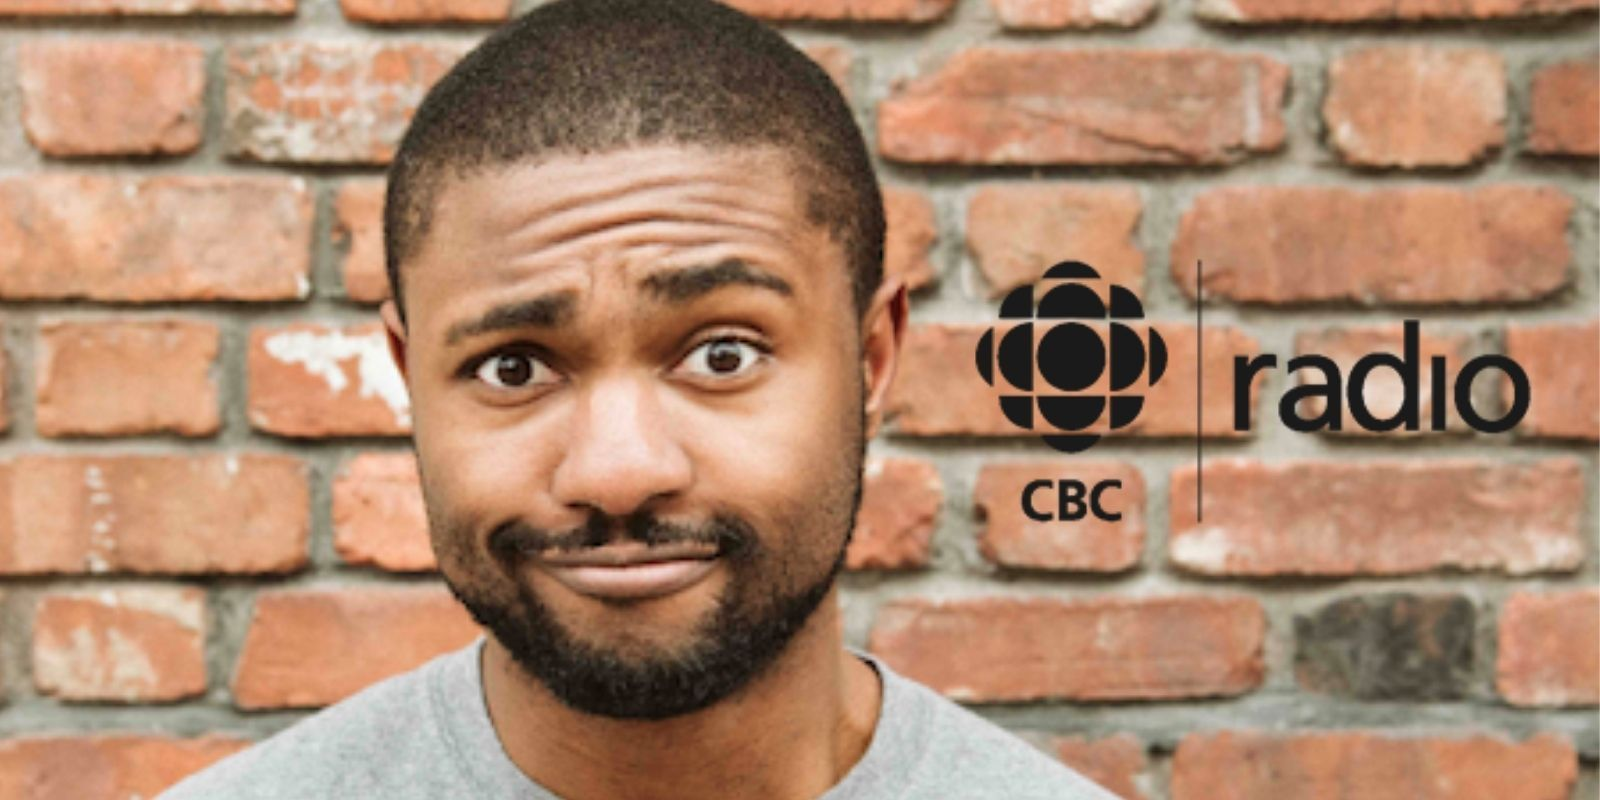 CBC quietly deletes interview with author who wrote about bombing and gassing white people in a race war